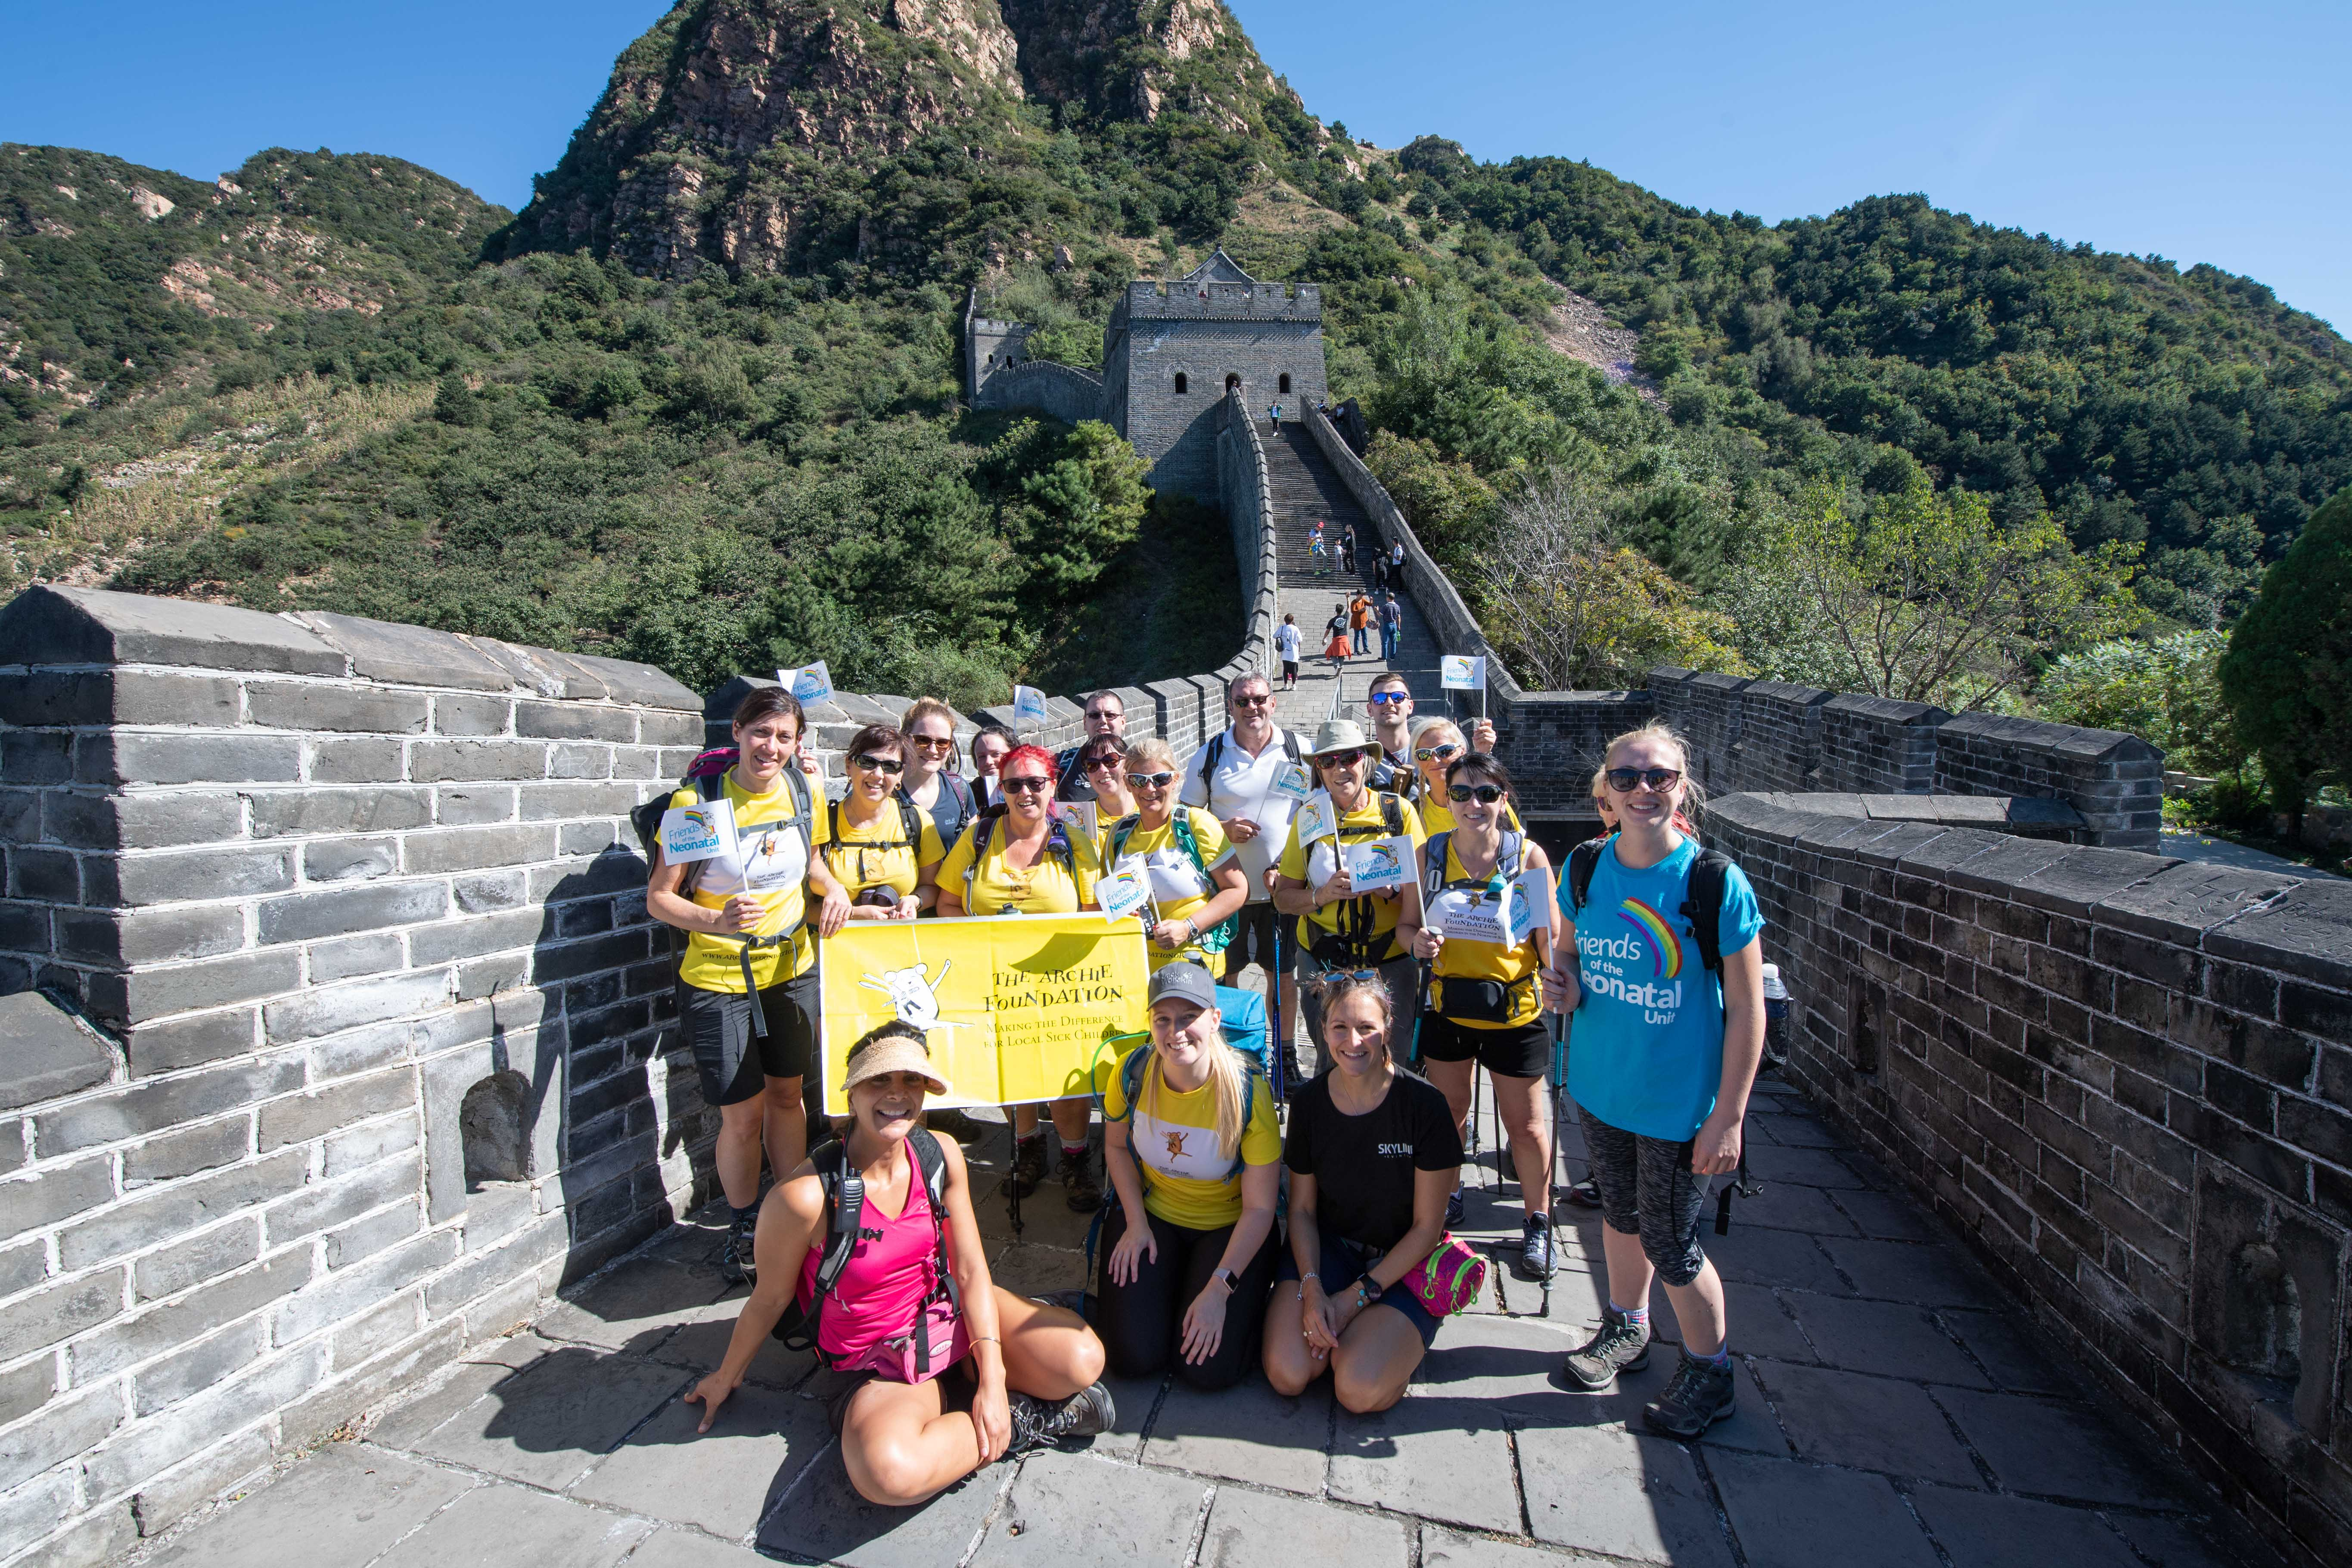 Archie Foundation Great Wall of China Trek 2018  Picture by Abermedia / Michal Wachucik